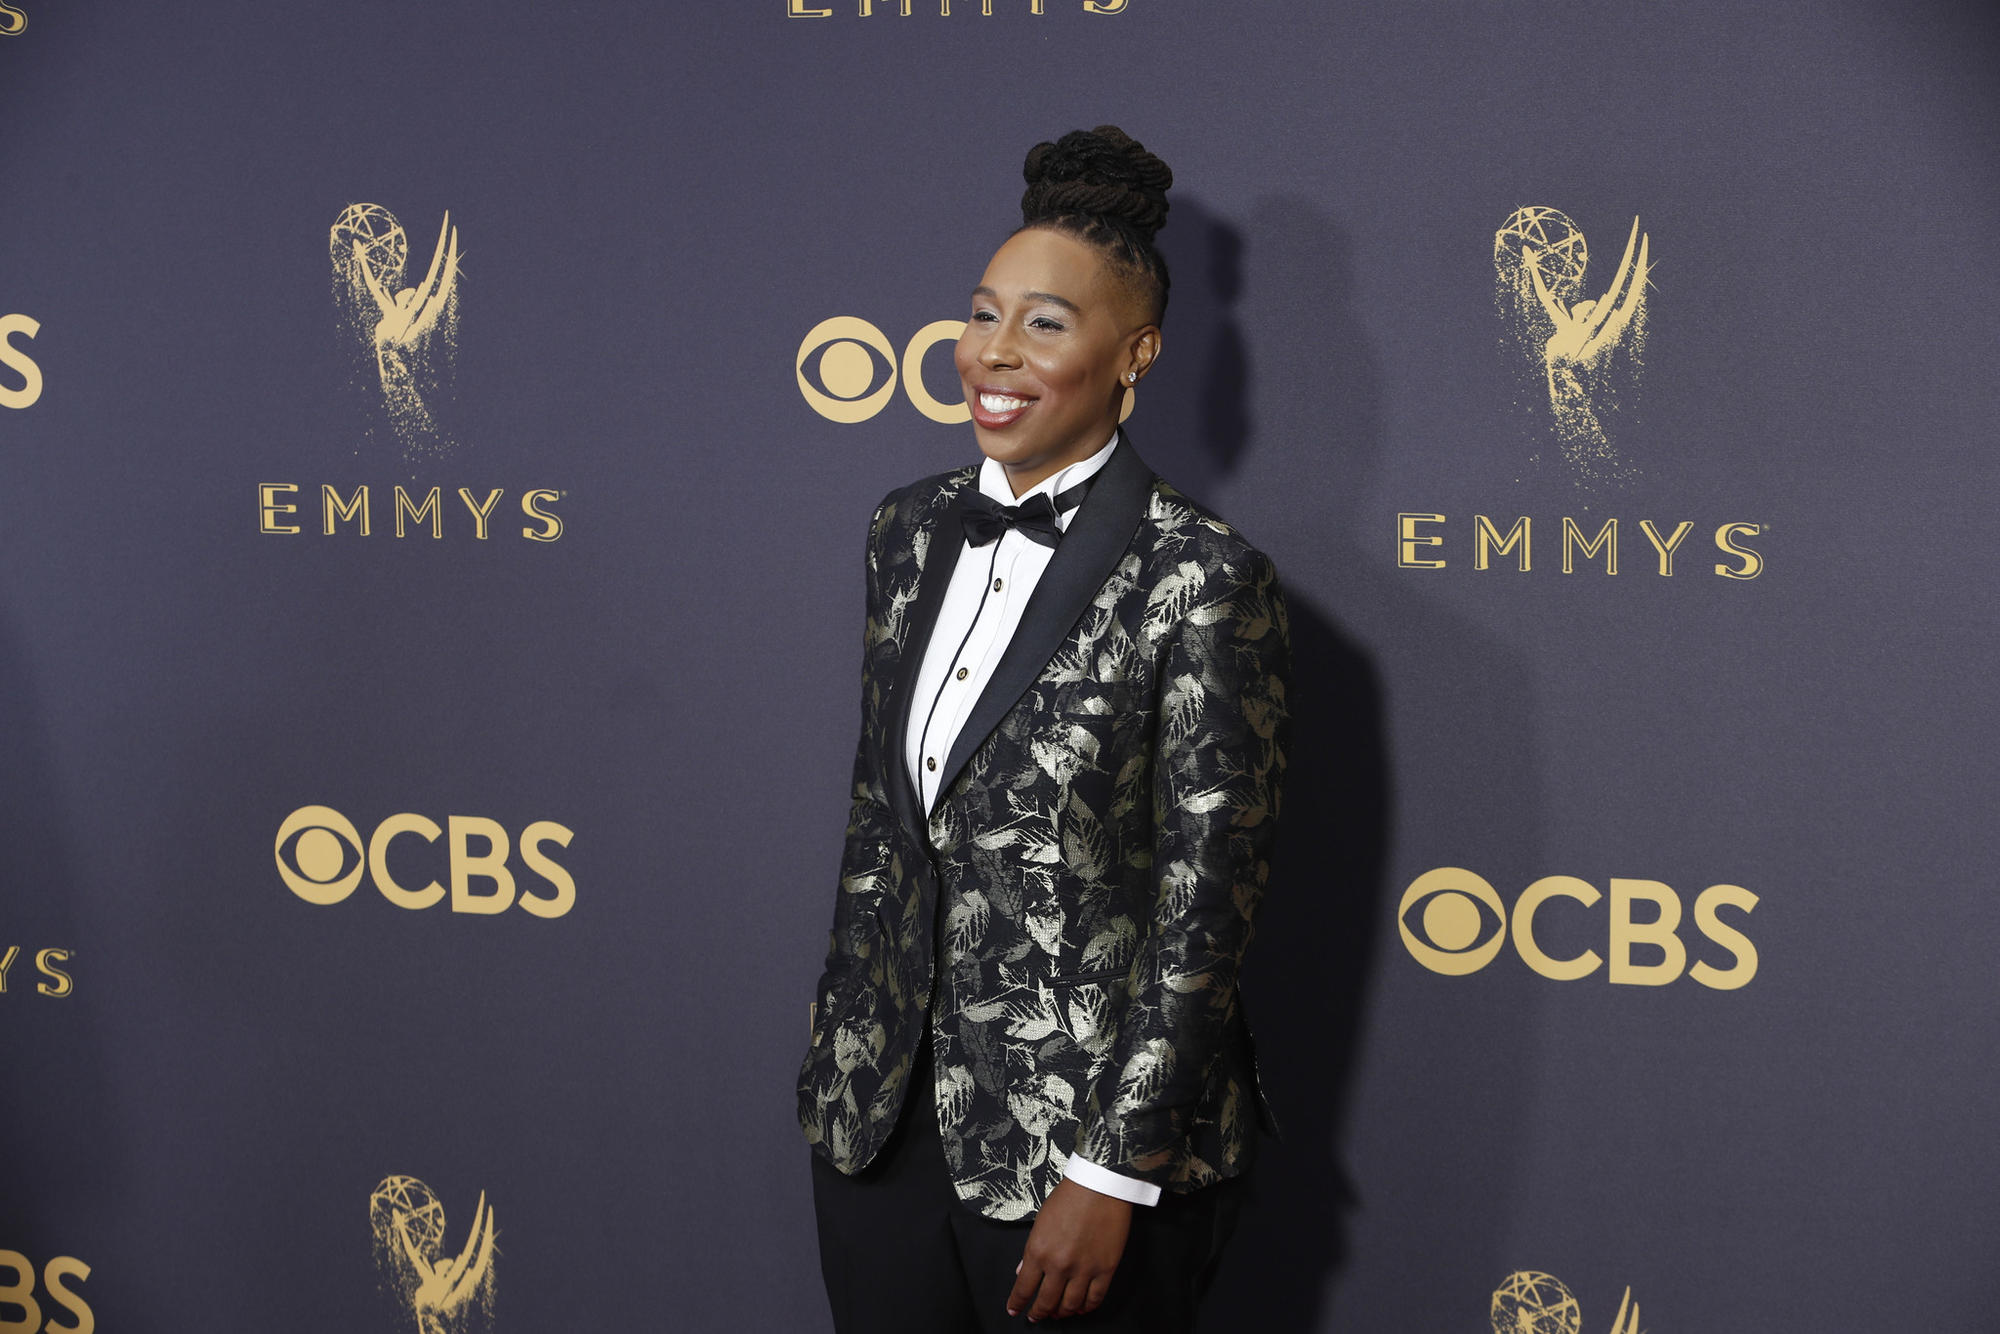 Lena Waithe on the red carpet for the 2017 Emmy Awards. (Kirk McKoy / Los Angeles Times)